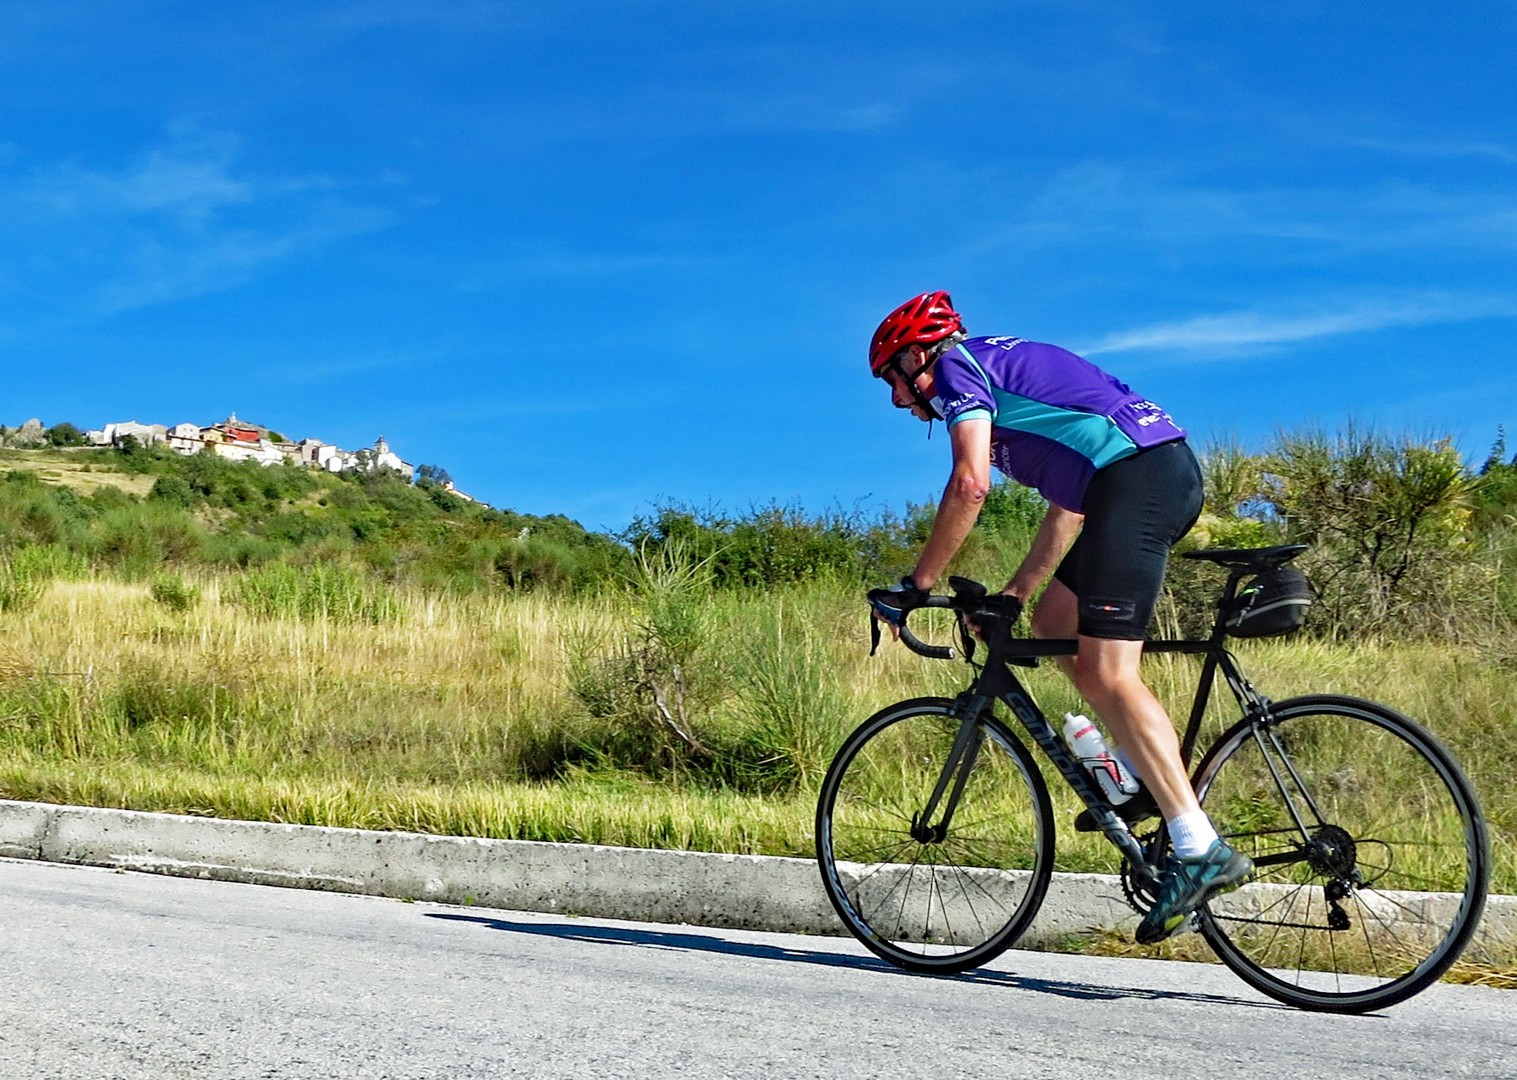 challenging-guided-road-cycling-holiday-italy.jpg - Italy - Grand Traverse - South to North (22 days) - Guided Road Cycling Holiday - Italia Road Cycling